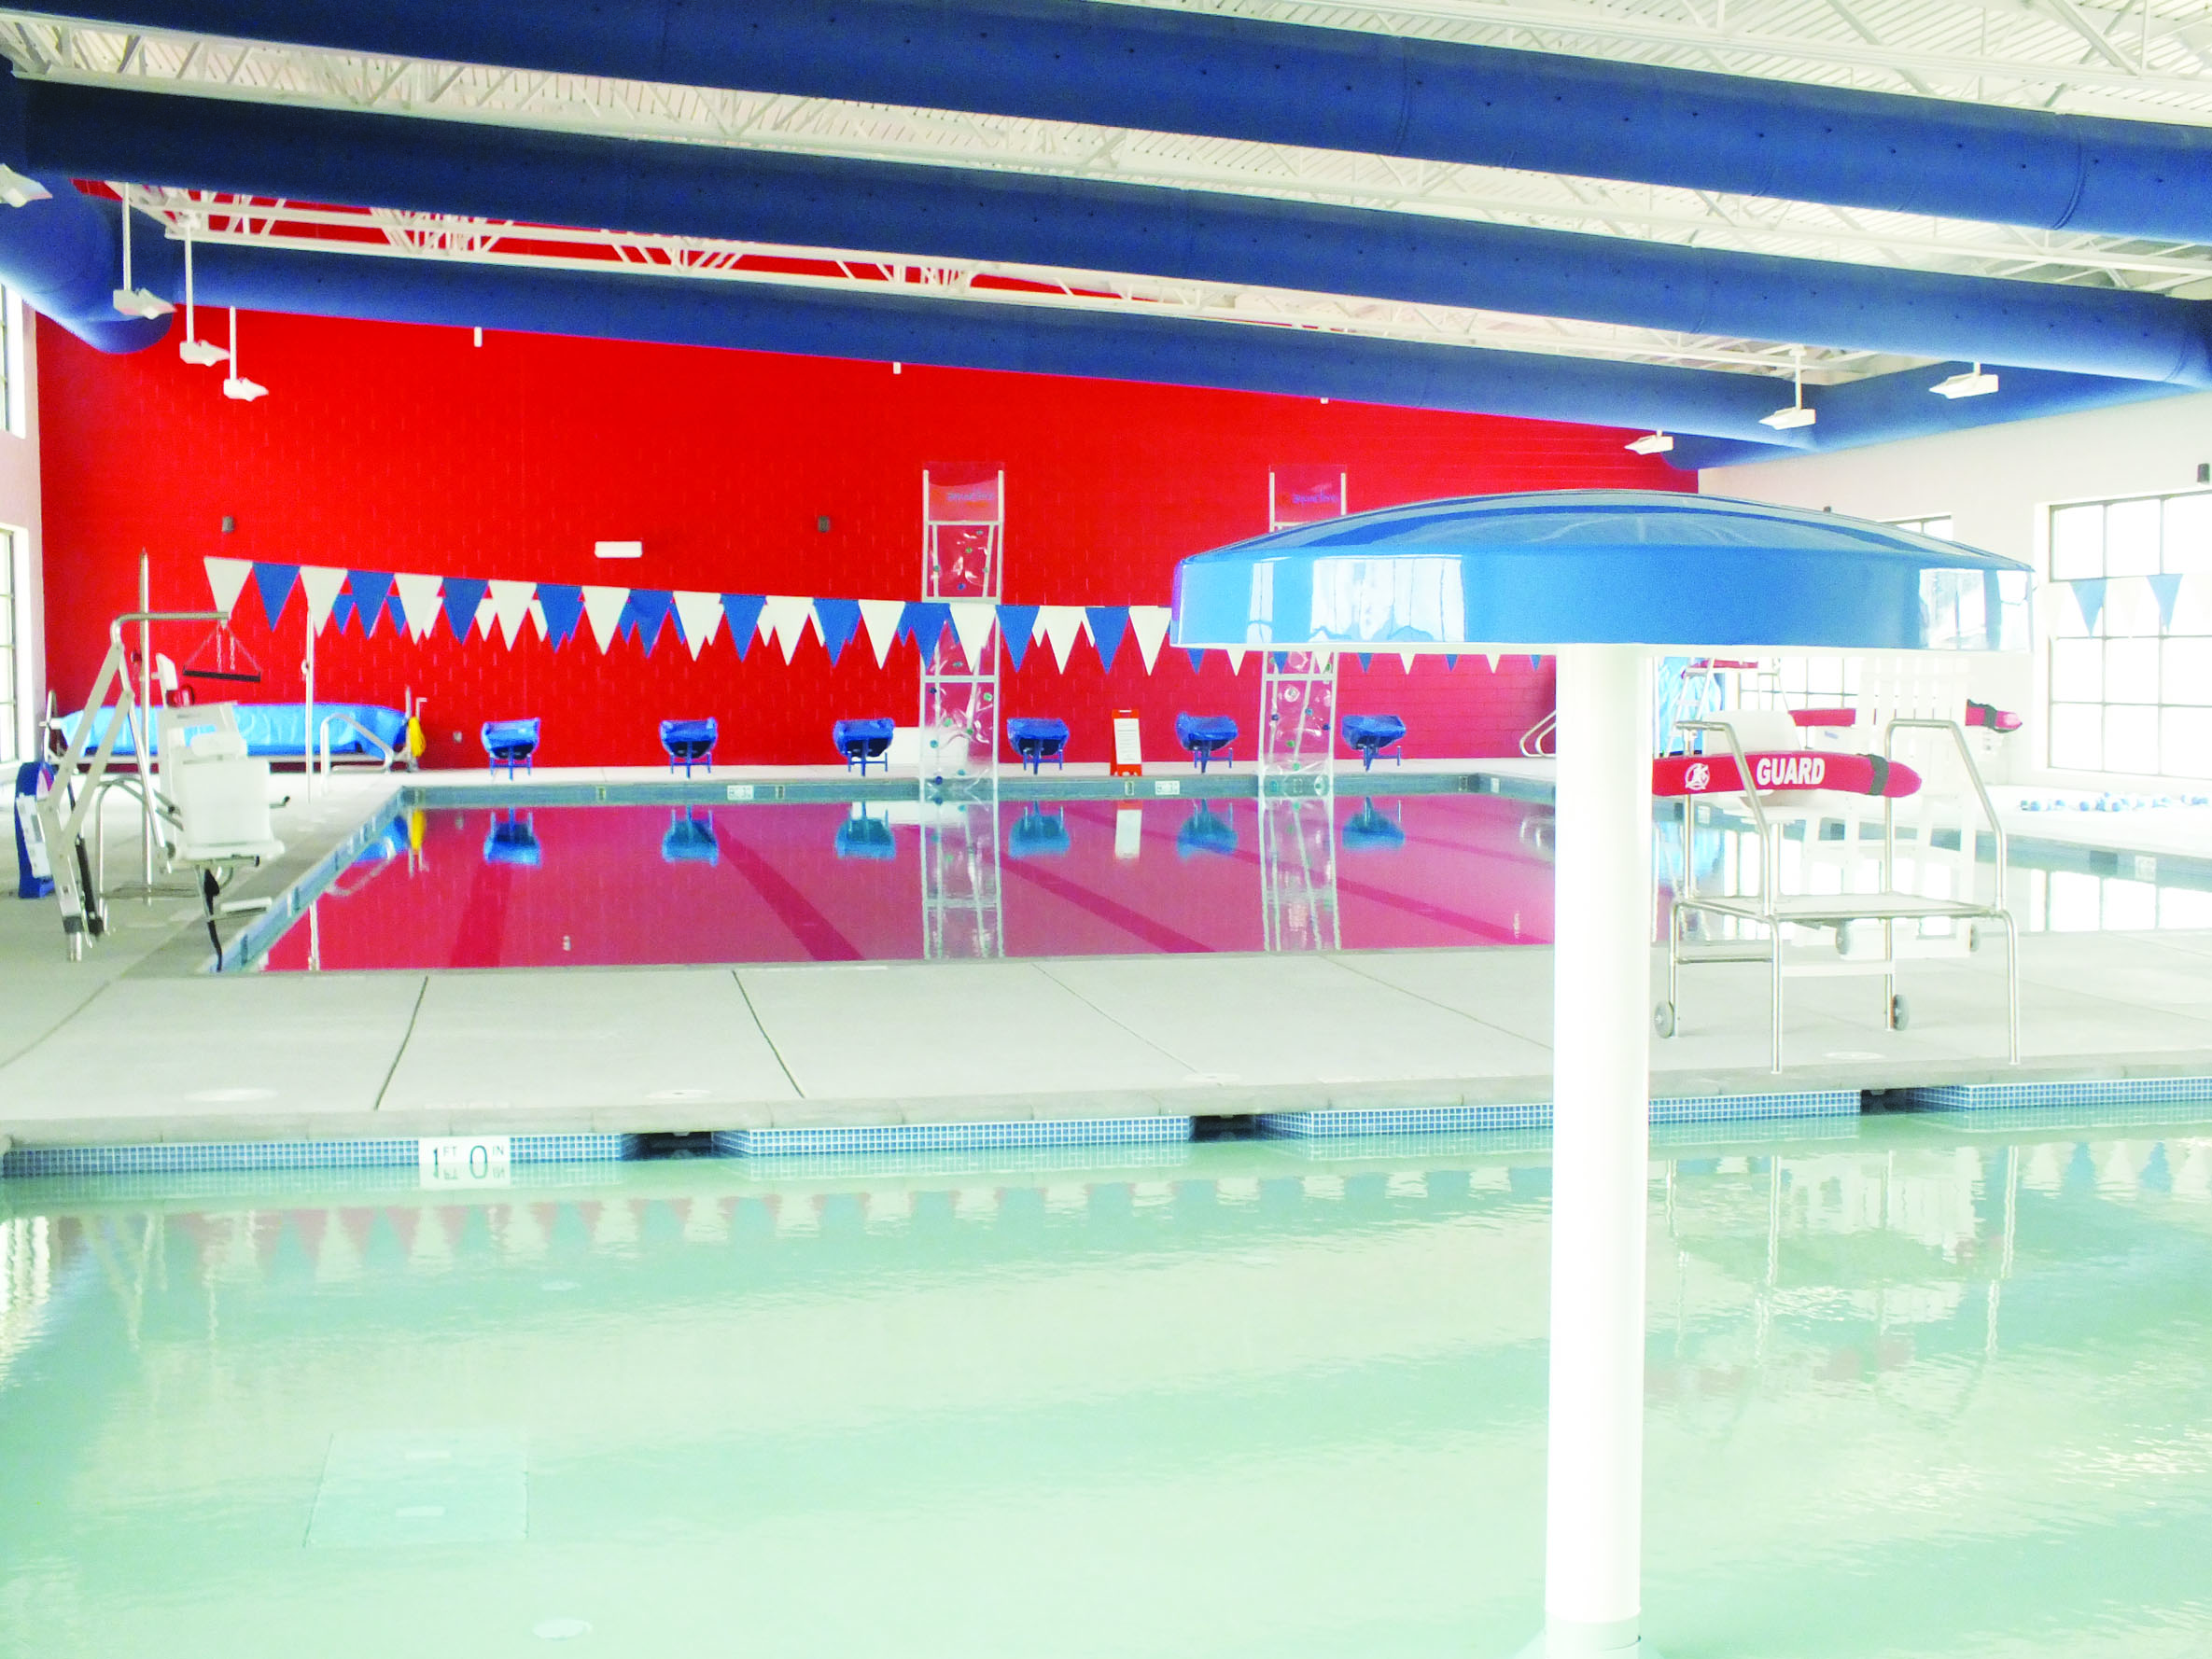 Aquatic Center Opens June 30 With Free Day The Ely Times